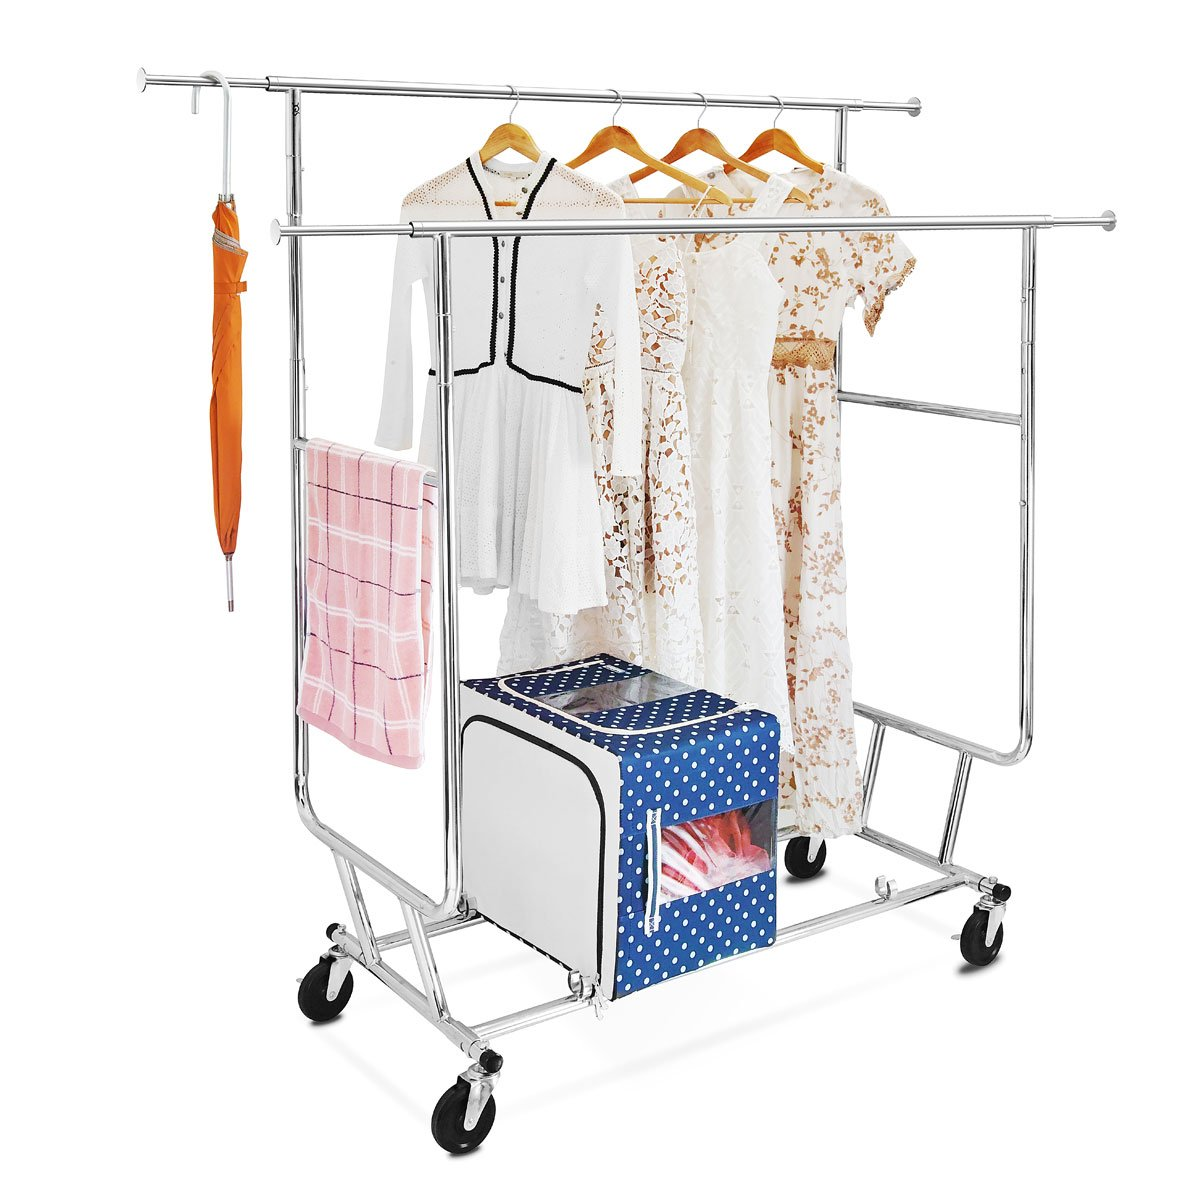 Double Rail Garment Rack with Adjustable Extendable Rails, Chrome Finish Collapsible Clothing Rack, Commercial Grade Clothes Drying Rack, Rolling Racks with Wheels